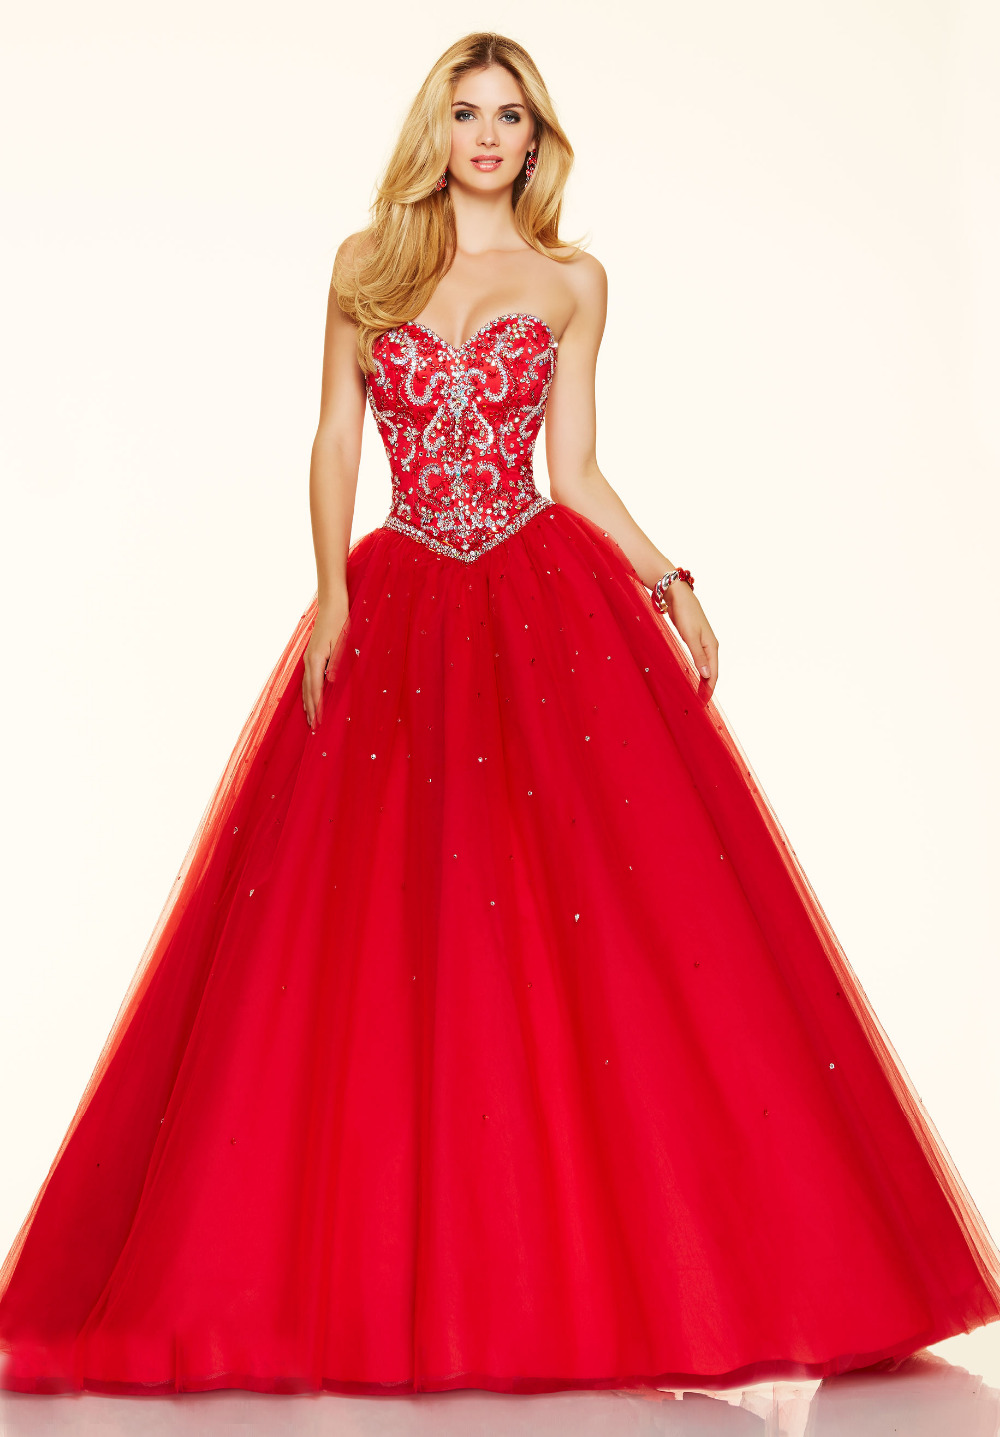 High Quality Prom Ball Gown-Buy Cheap Prom Ball Gown lots from ...